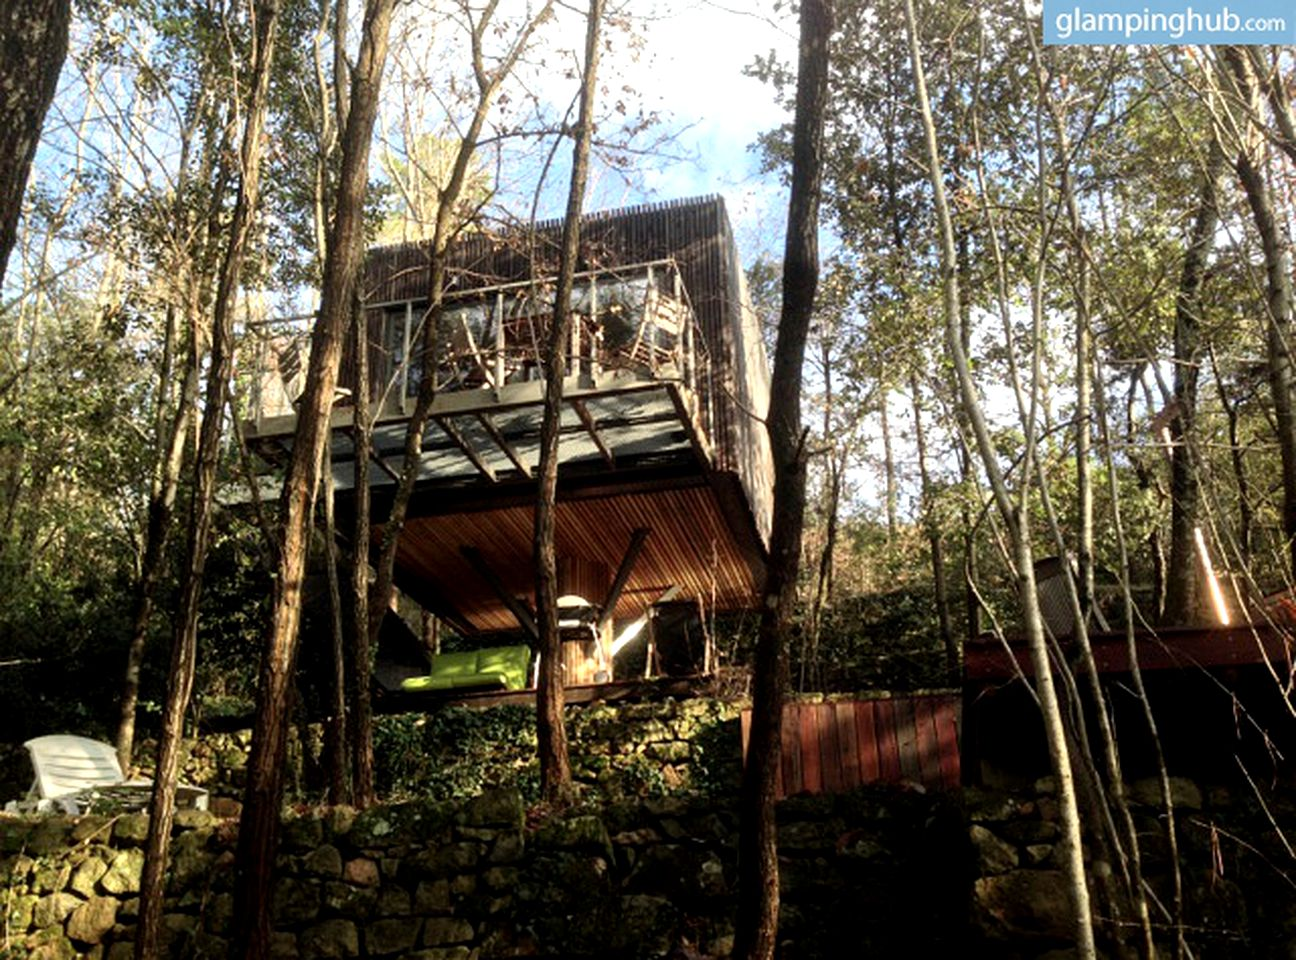 Tree house hotel with hot tub in France.